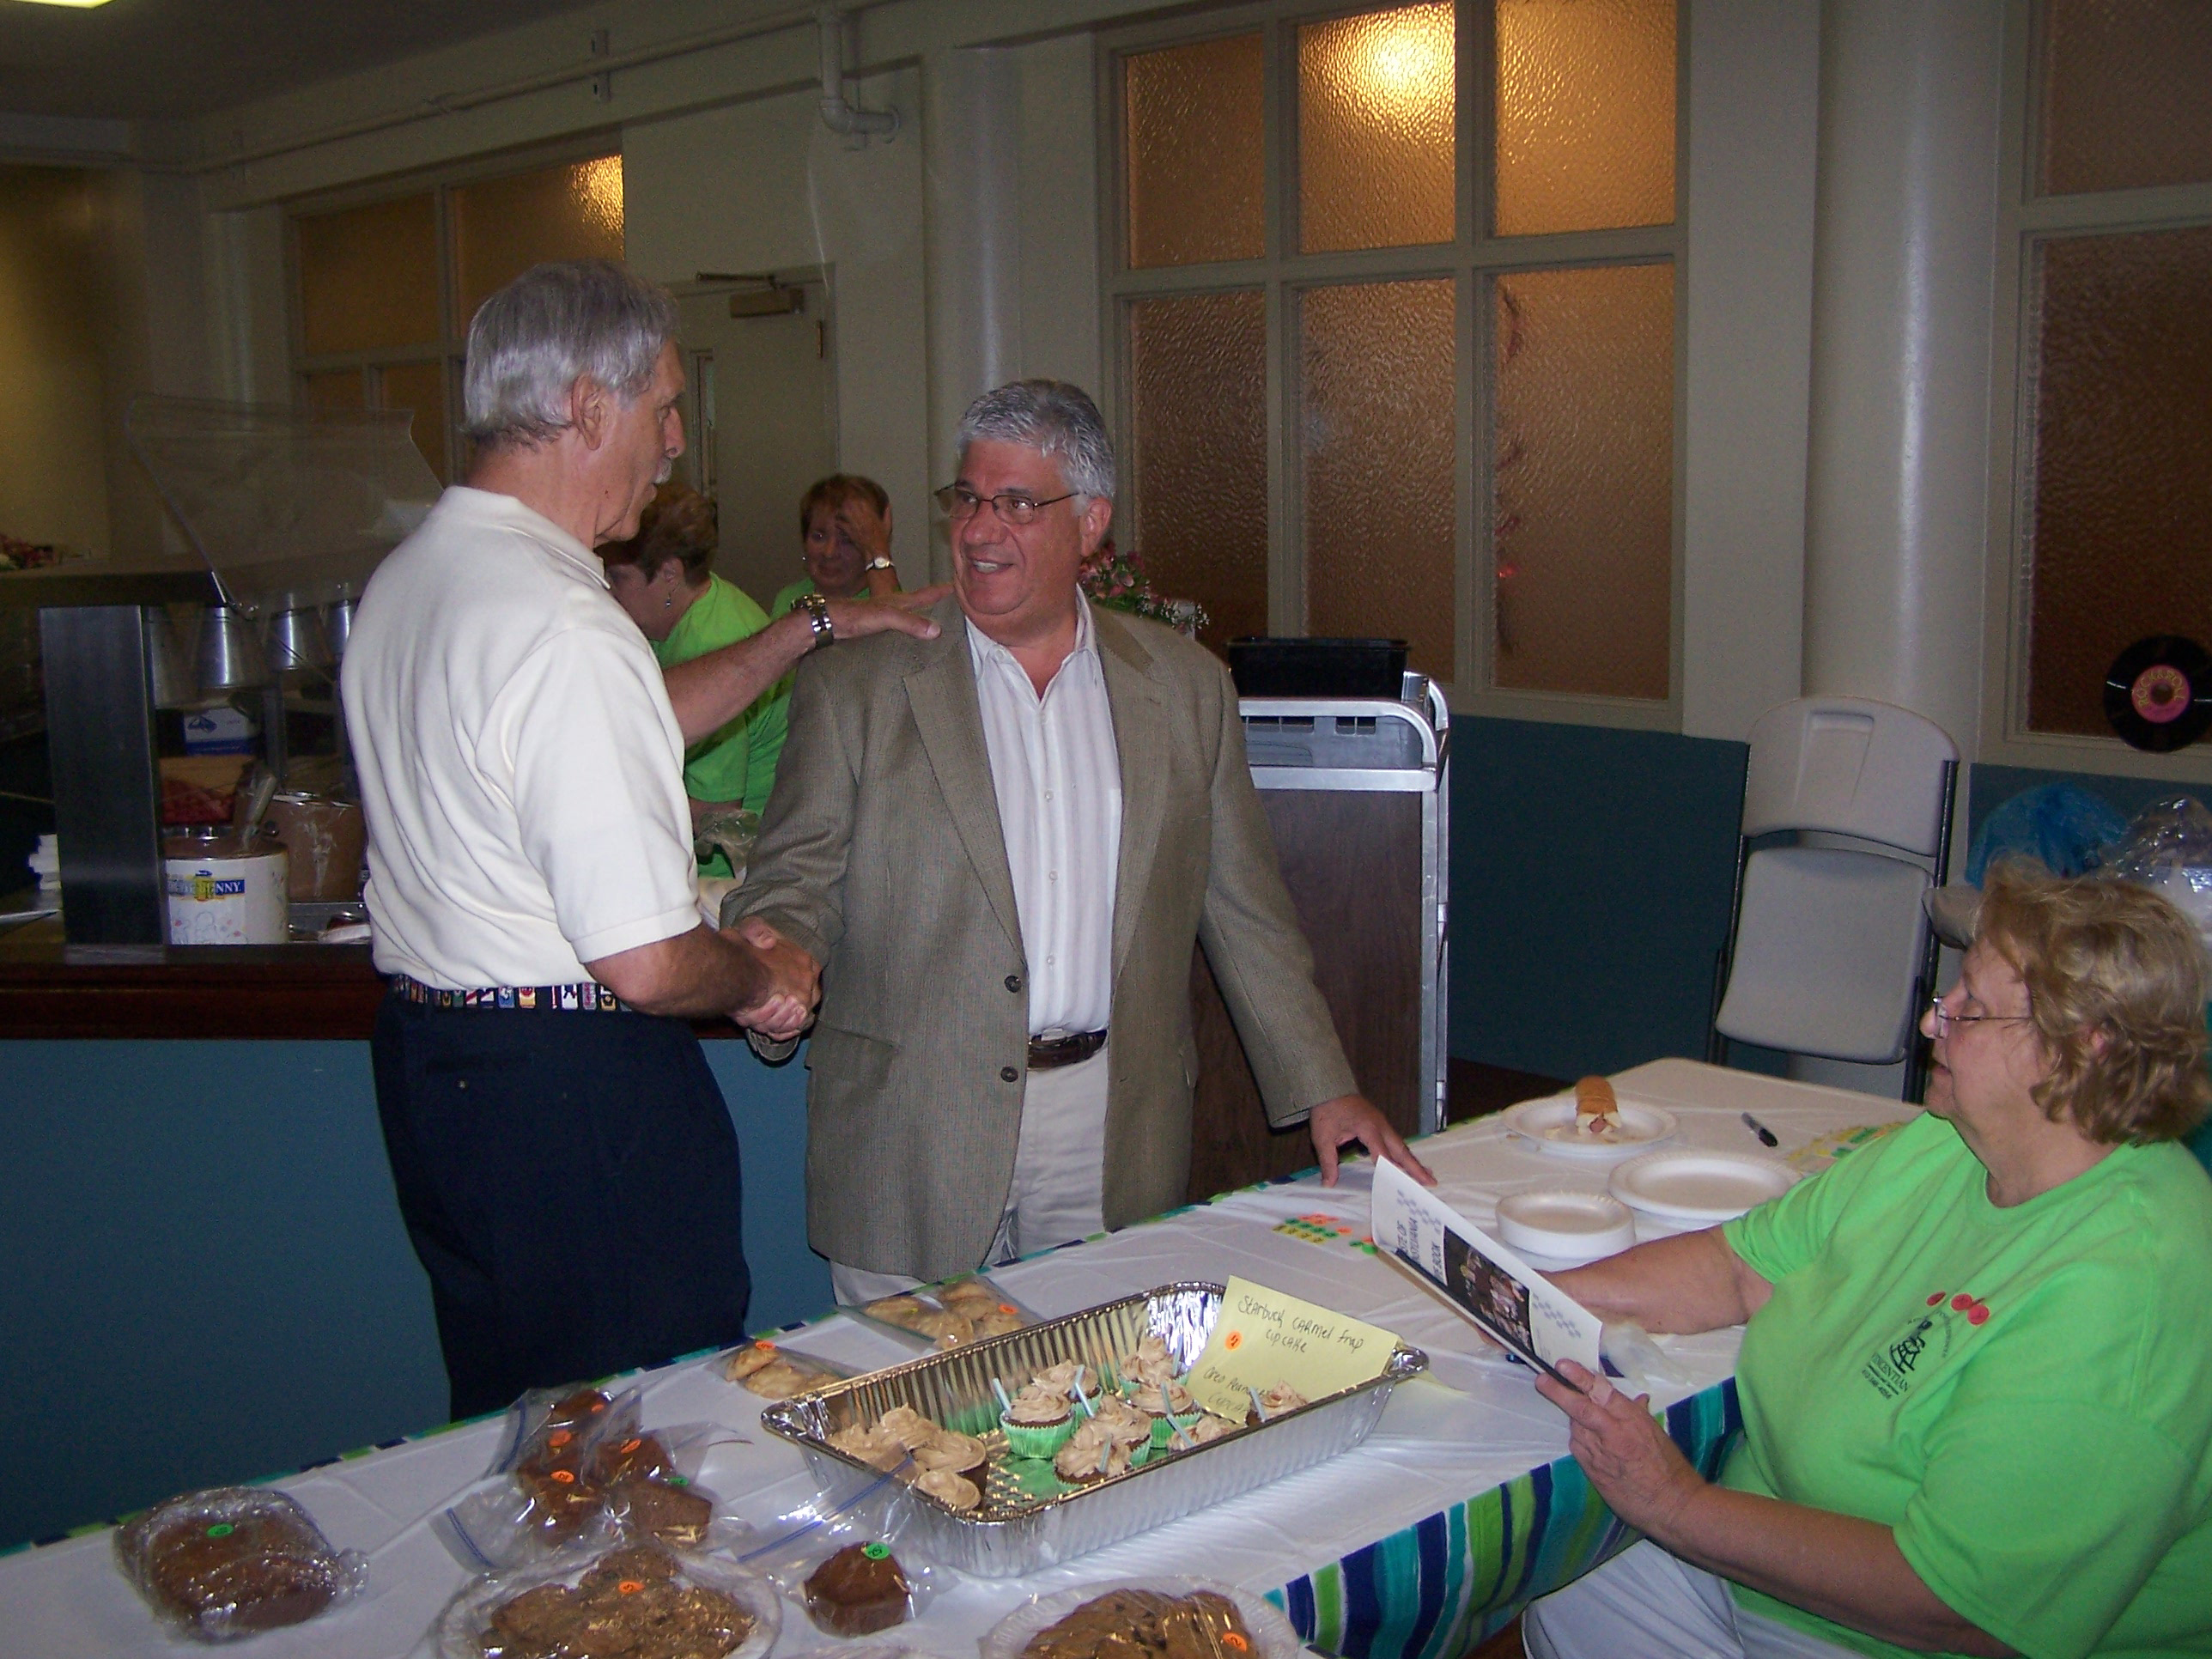 June 21, 2014: Senator Fontana visited Marion Manor on Saturday, June 21st